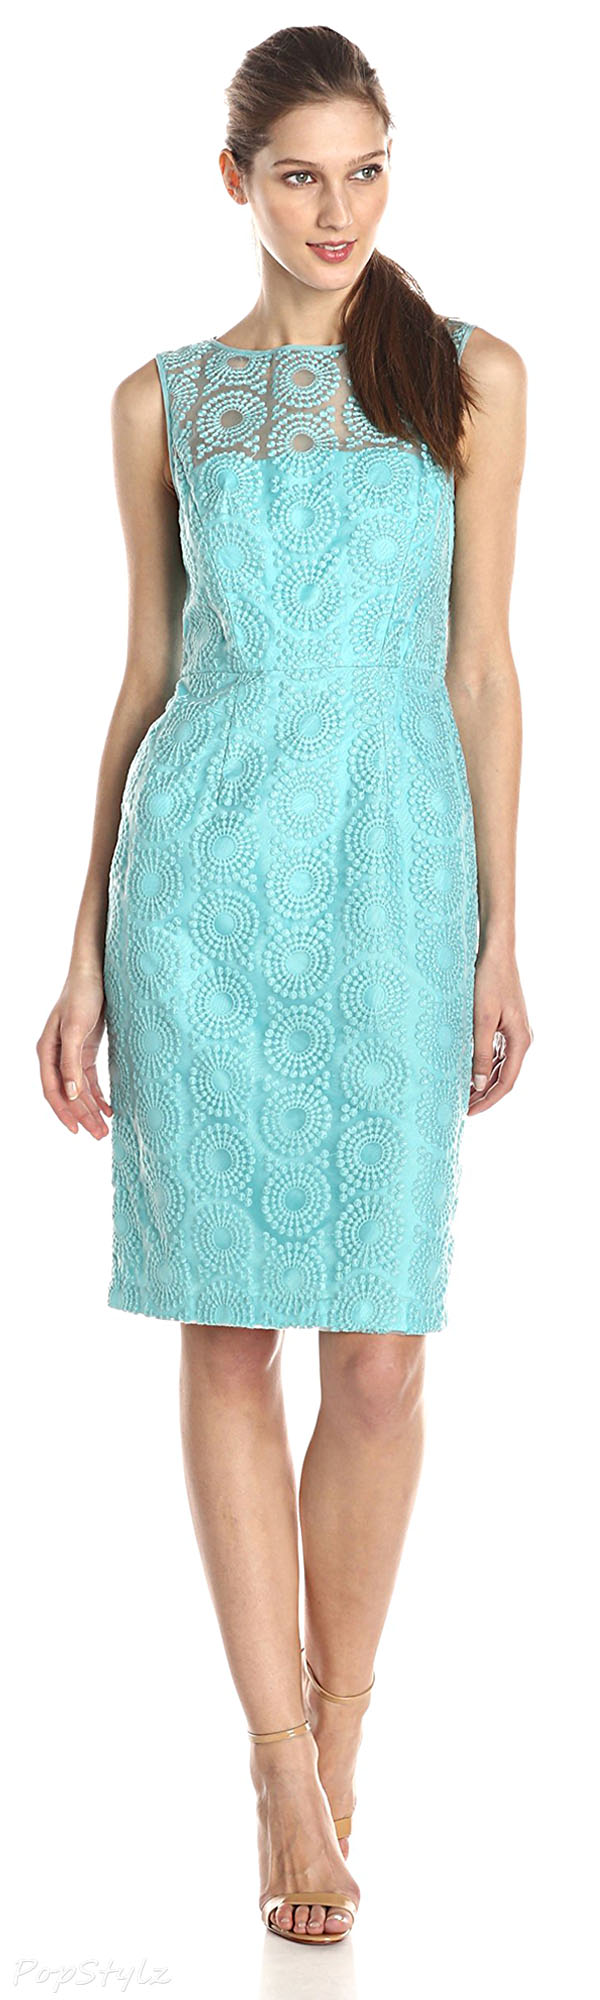 Maggy London Scuba Blue Circle Dot Organza Sheath Dress